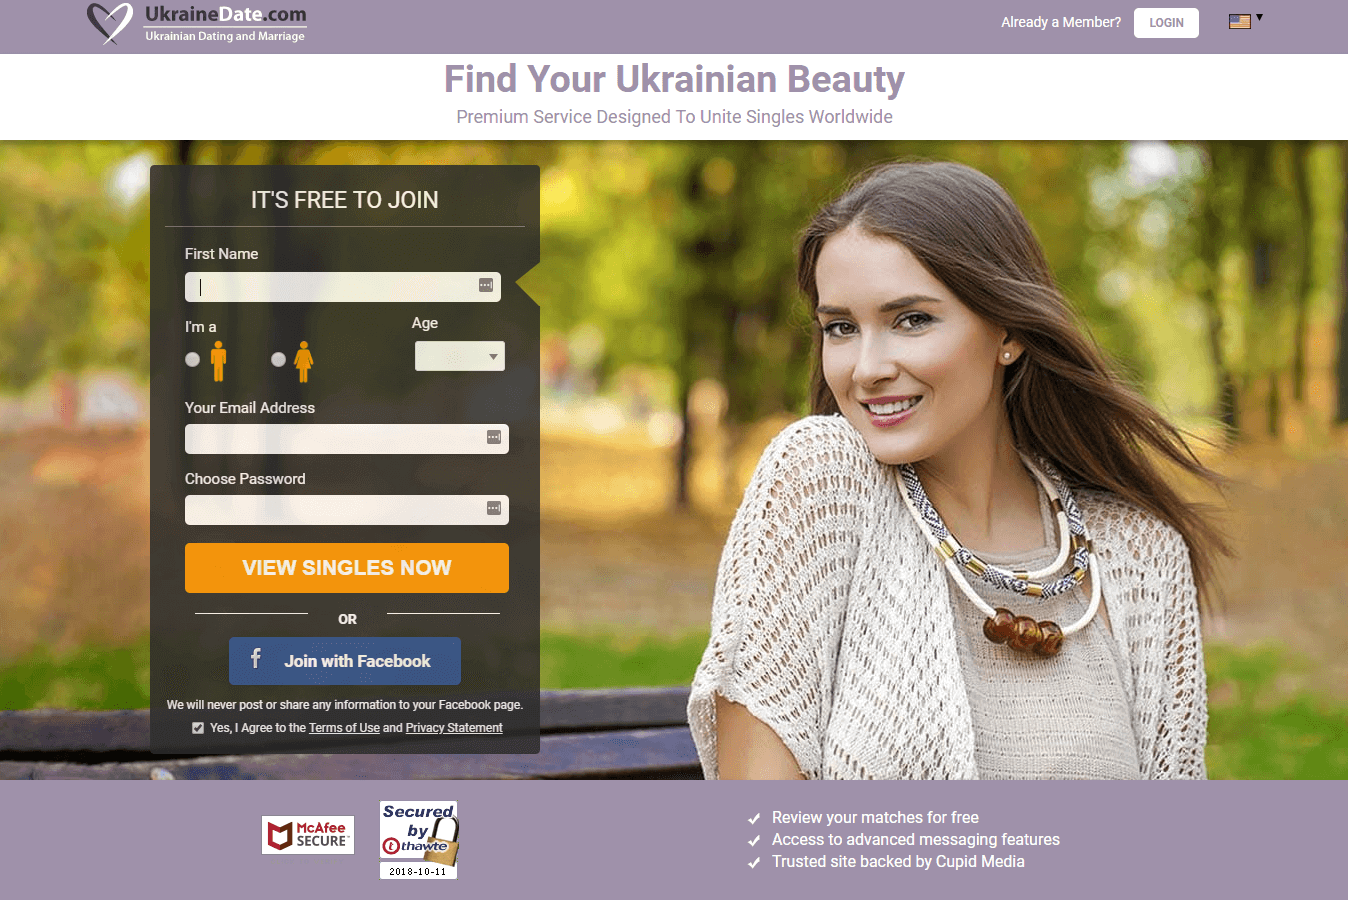 Liste over cupid dating sites